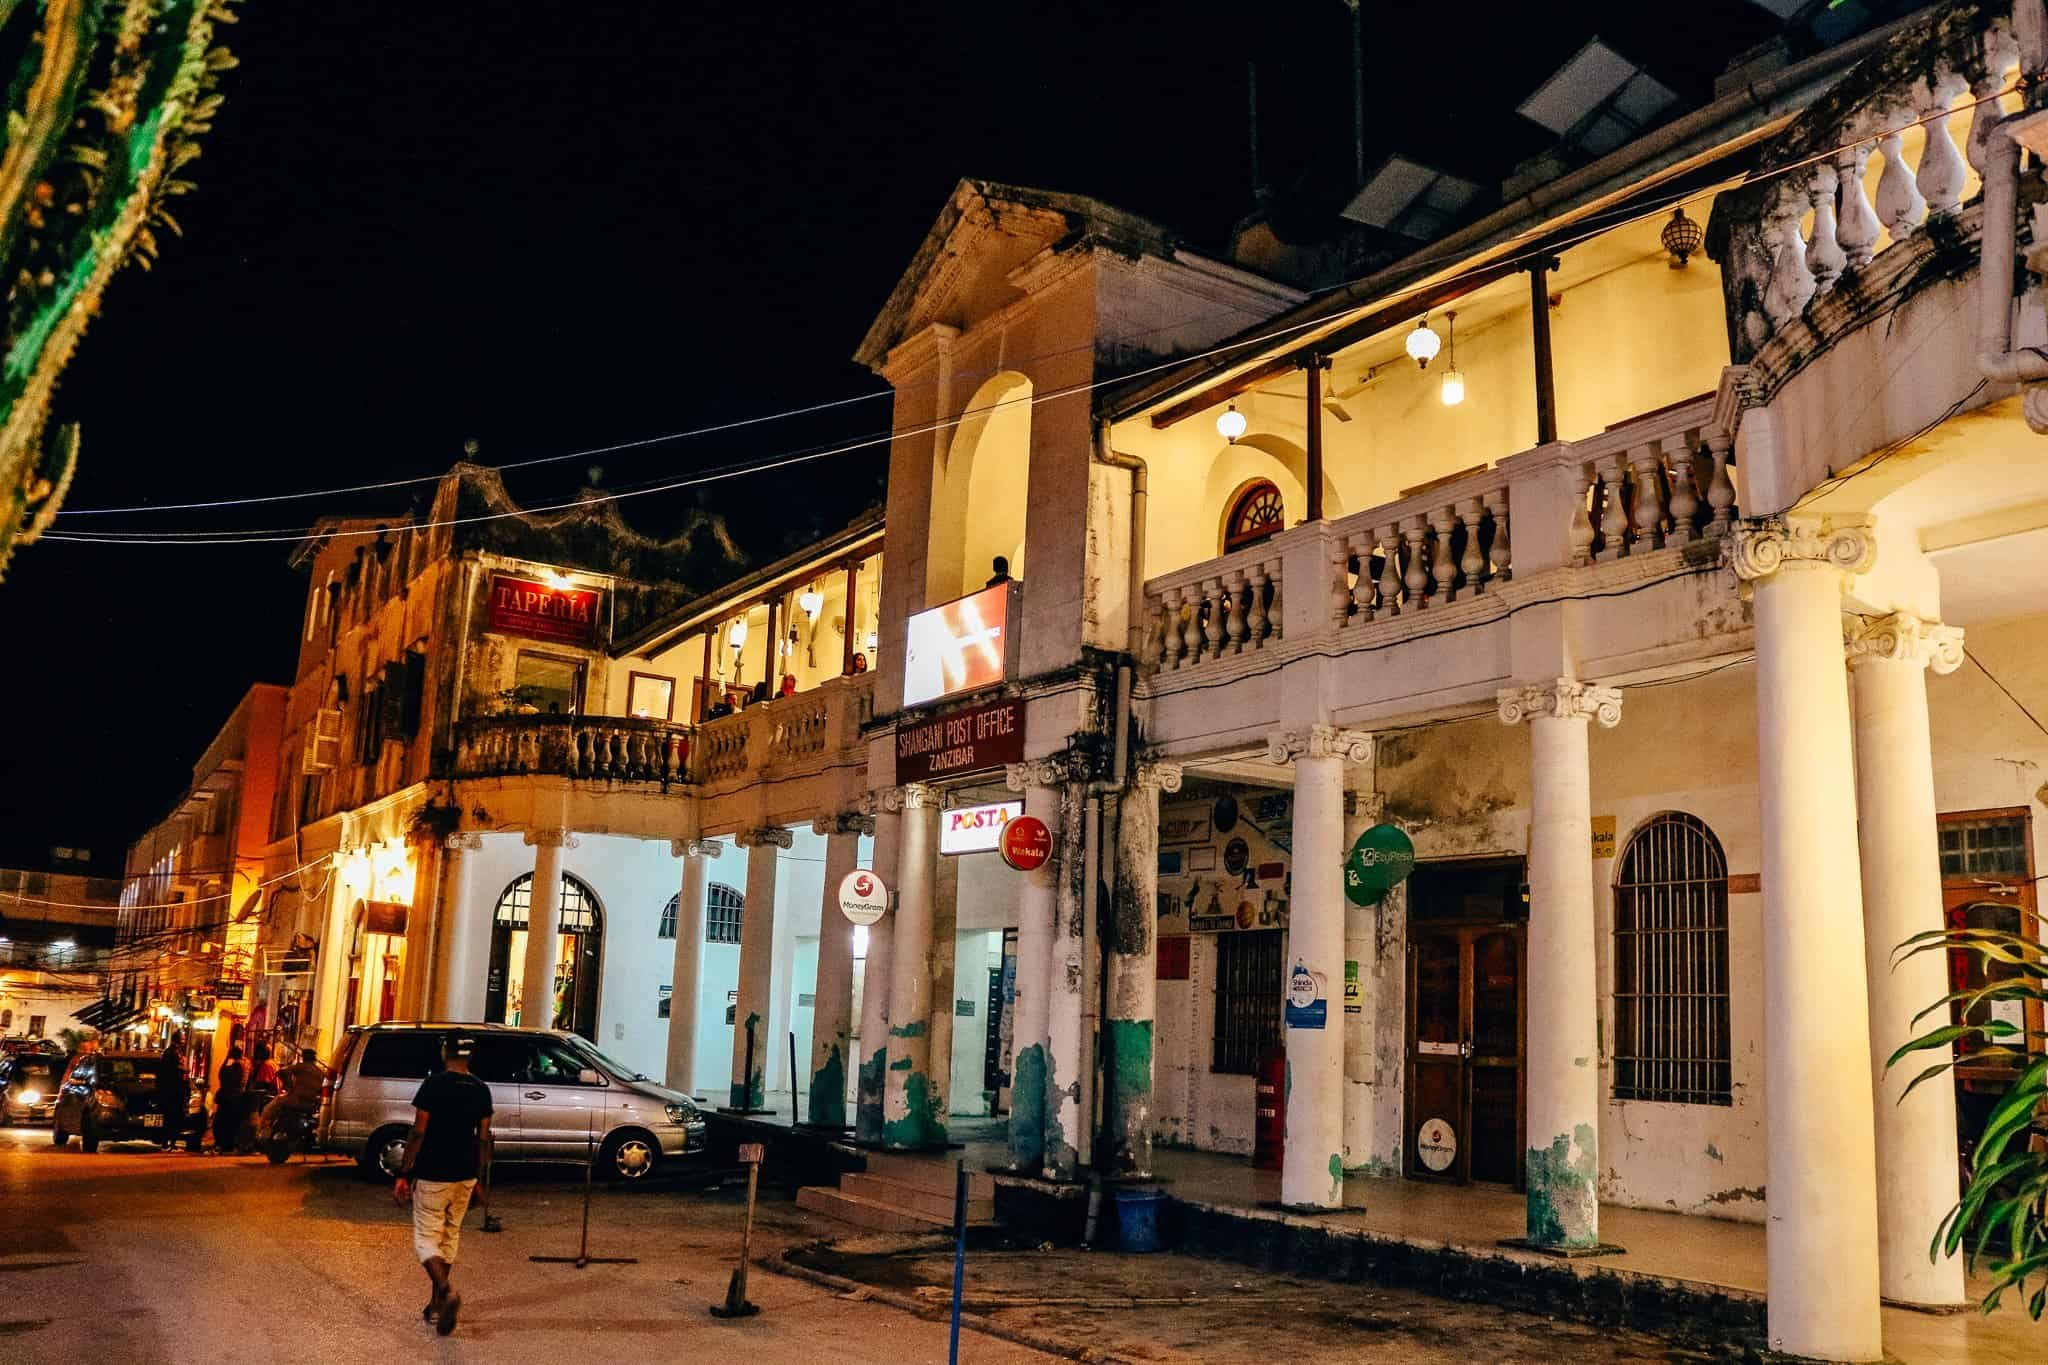 Visions of Zanzibar - Stone Town at Night